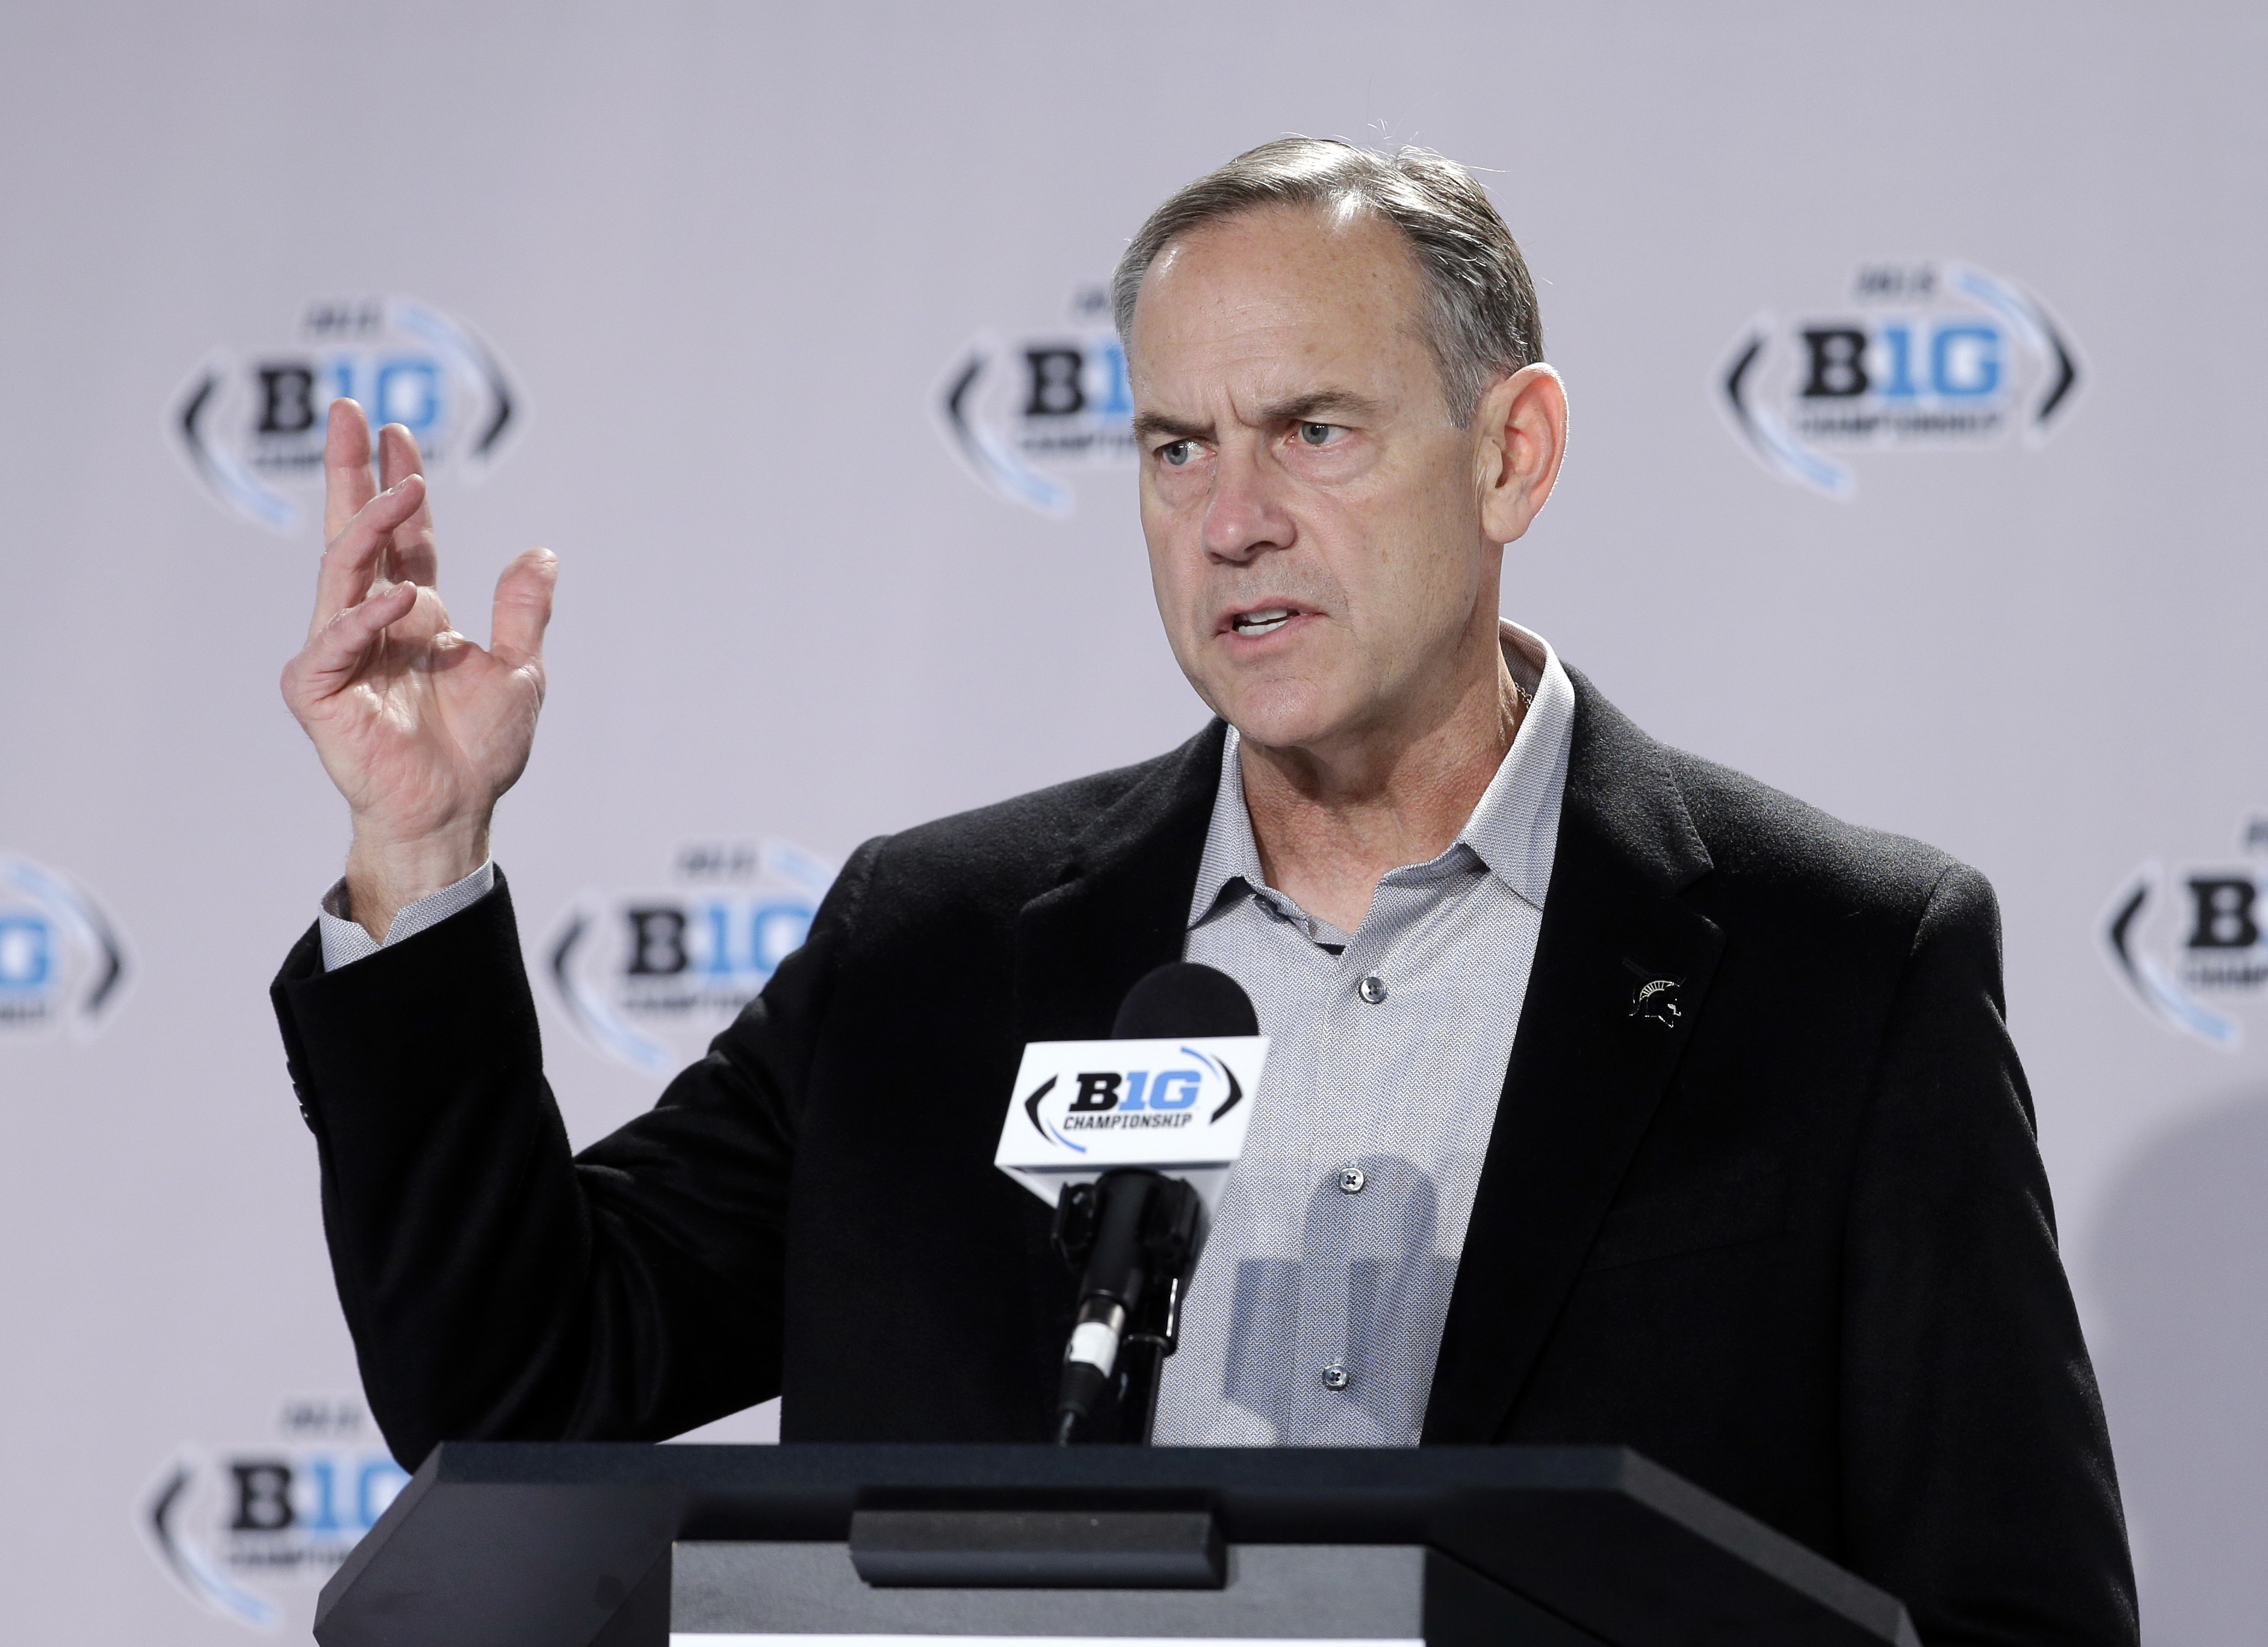 Michigan State head coach Mark Dantonio responds to a question during a news conference for the Big Ten Conference championship NCAA college football game Friday, Dec. 4, 2015, in Indianapolis. Iowa will play Michigan State Saturday for the championship.